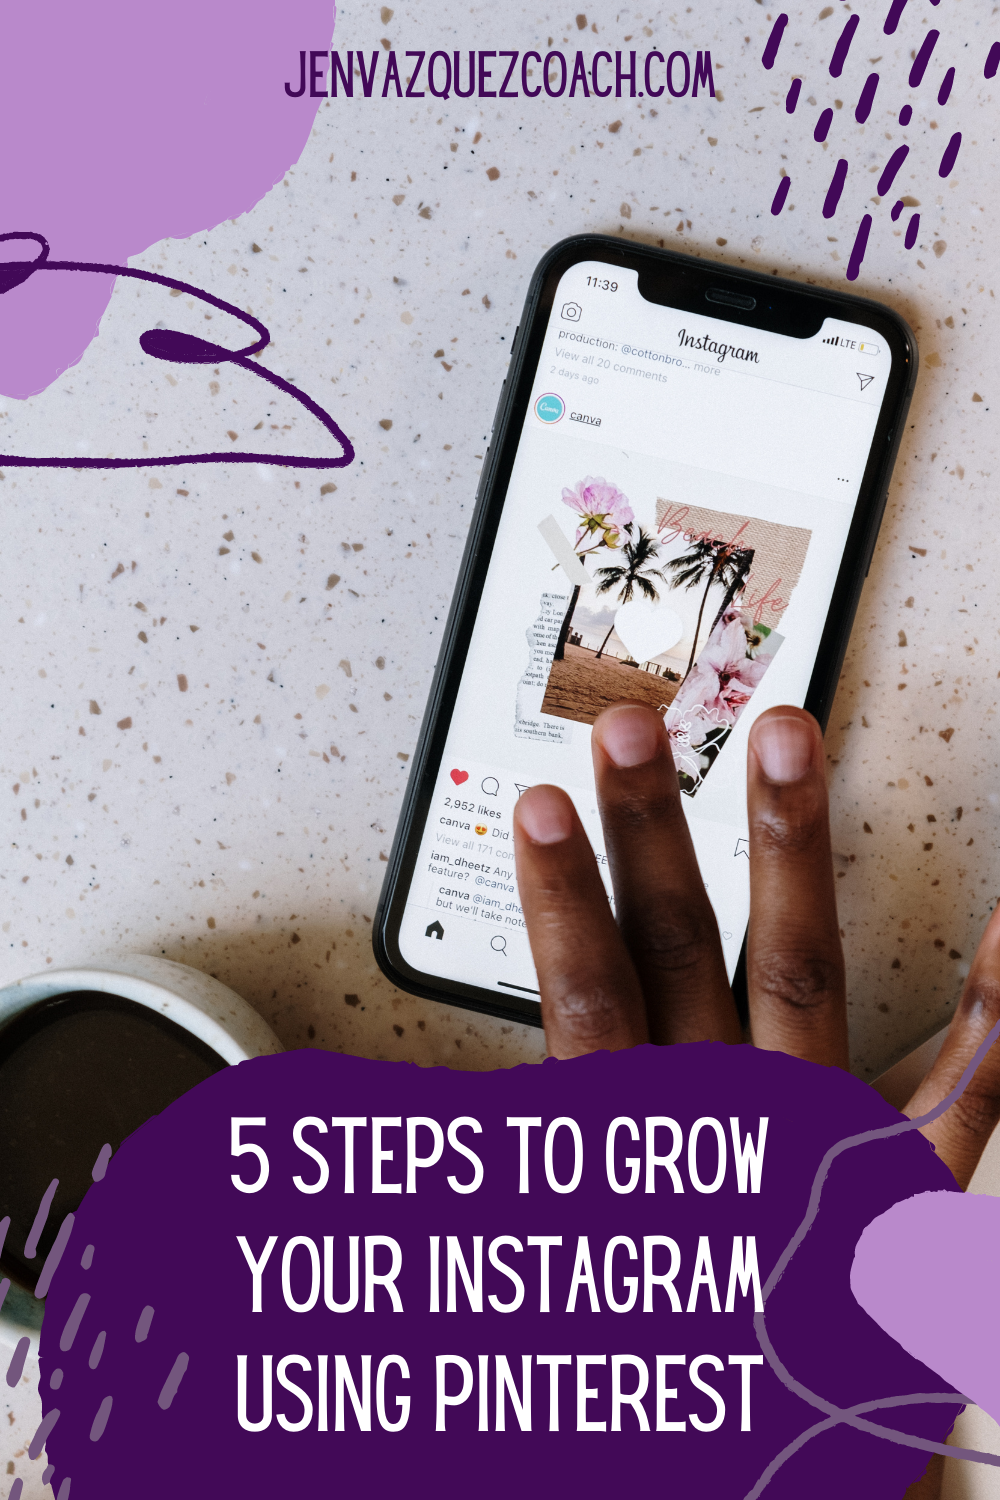 5 Steps to Grow Your Instagram Using Pinterest2